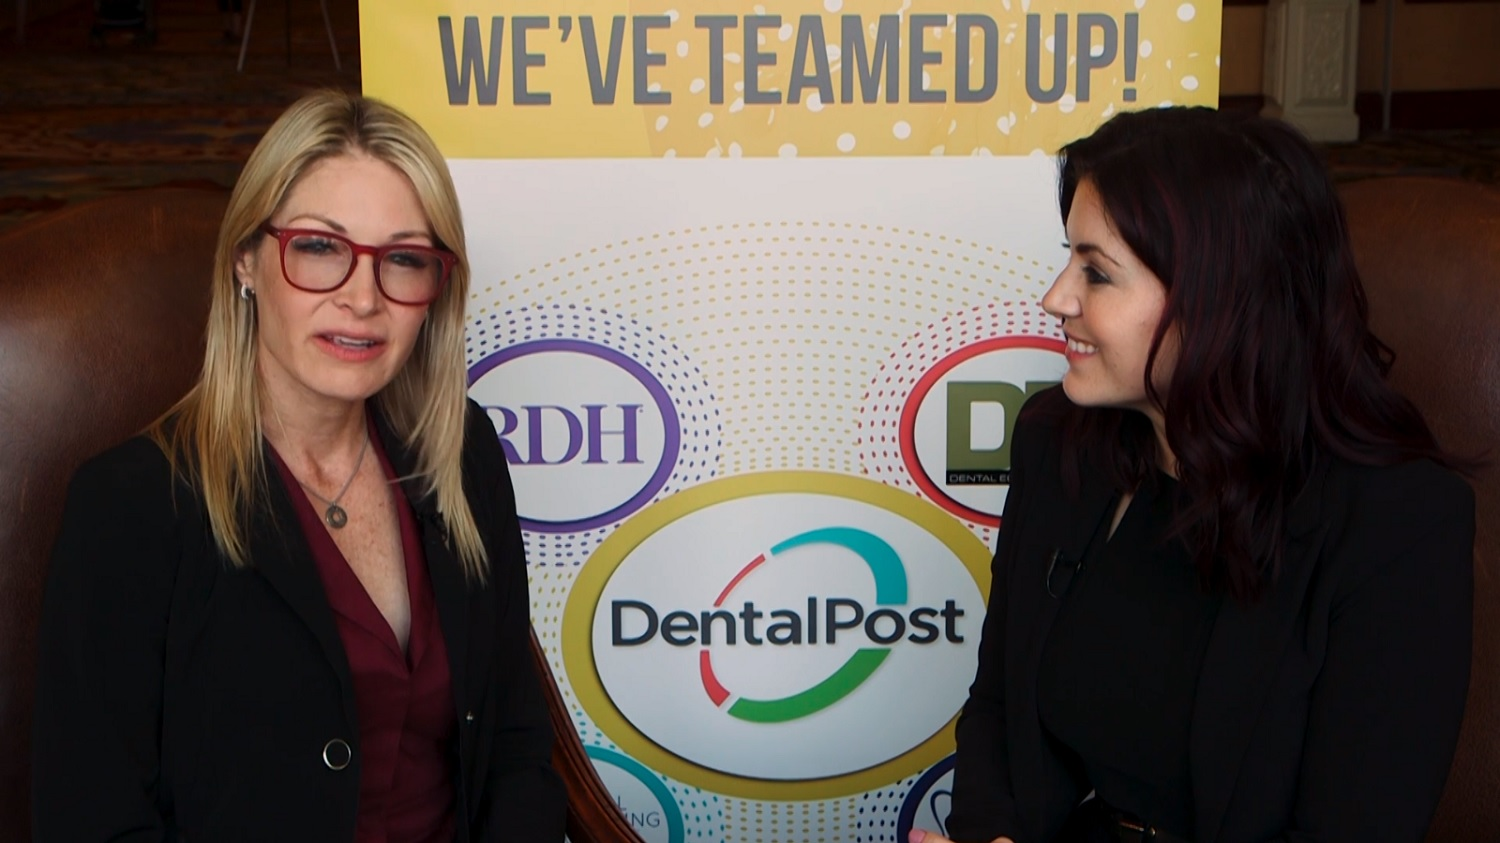 DentalPost CEO in collaboration with RDH